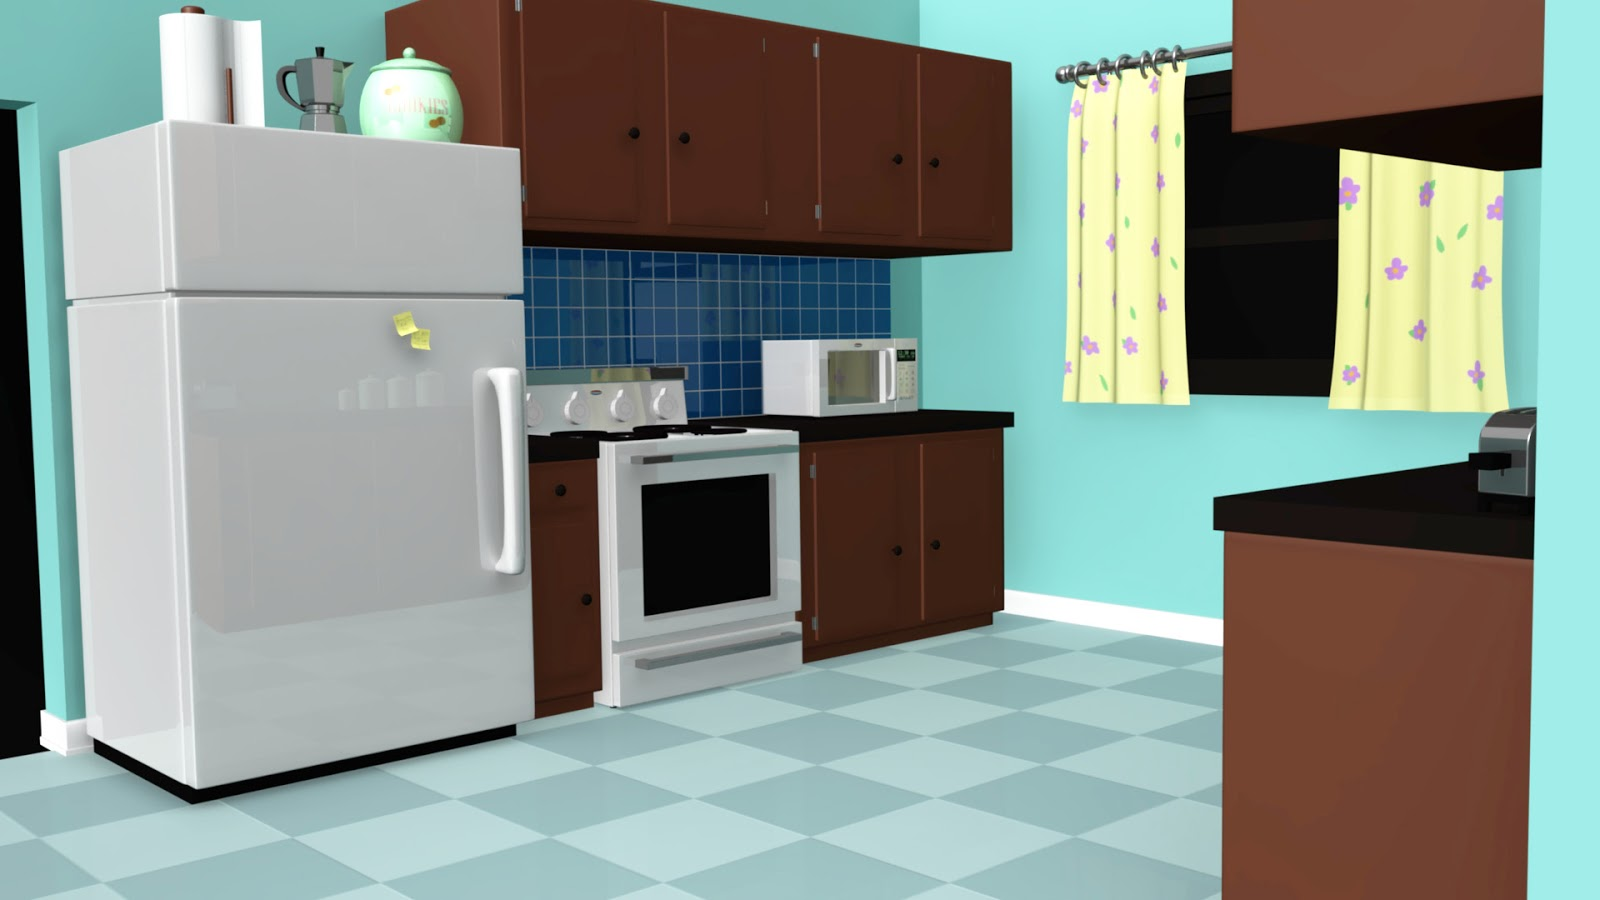 Kitchen Environment - 3D Rendered Images | "|1600|900|?|f9f7dee2017c0cf48e5a0b639438d428|False|UNLIKELY|0.35290879011154175